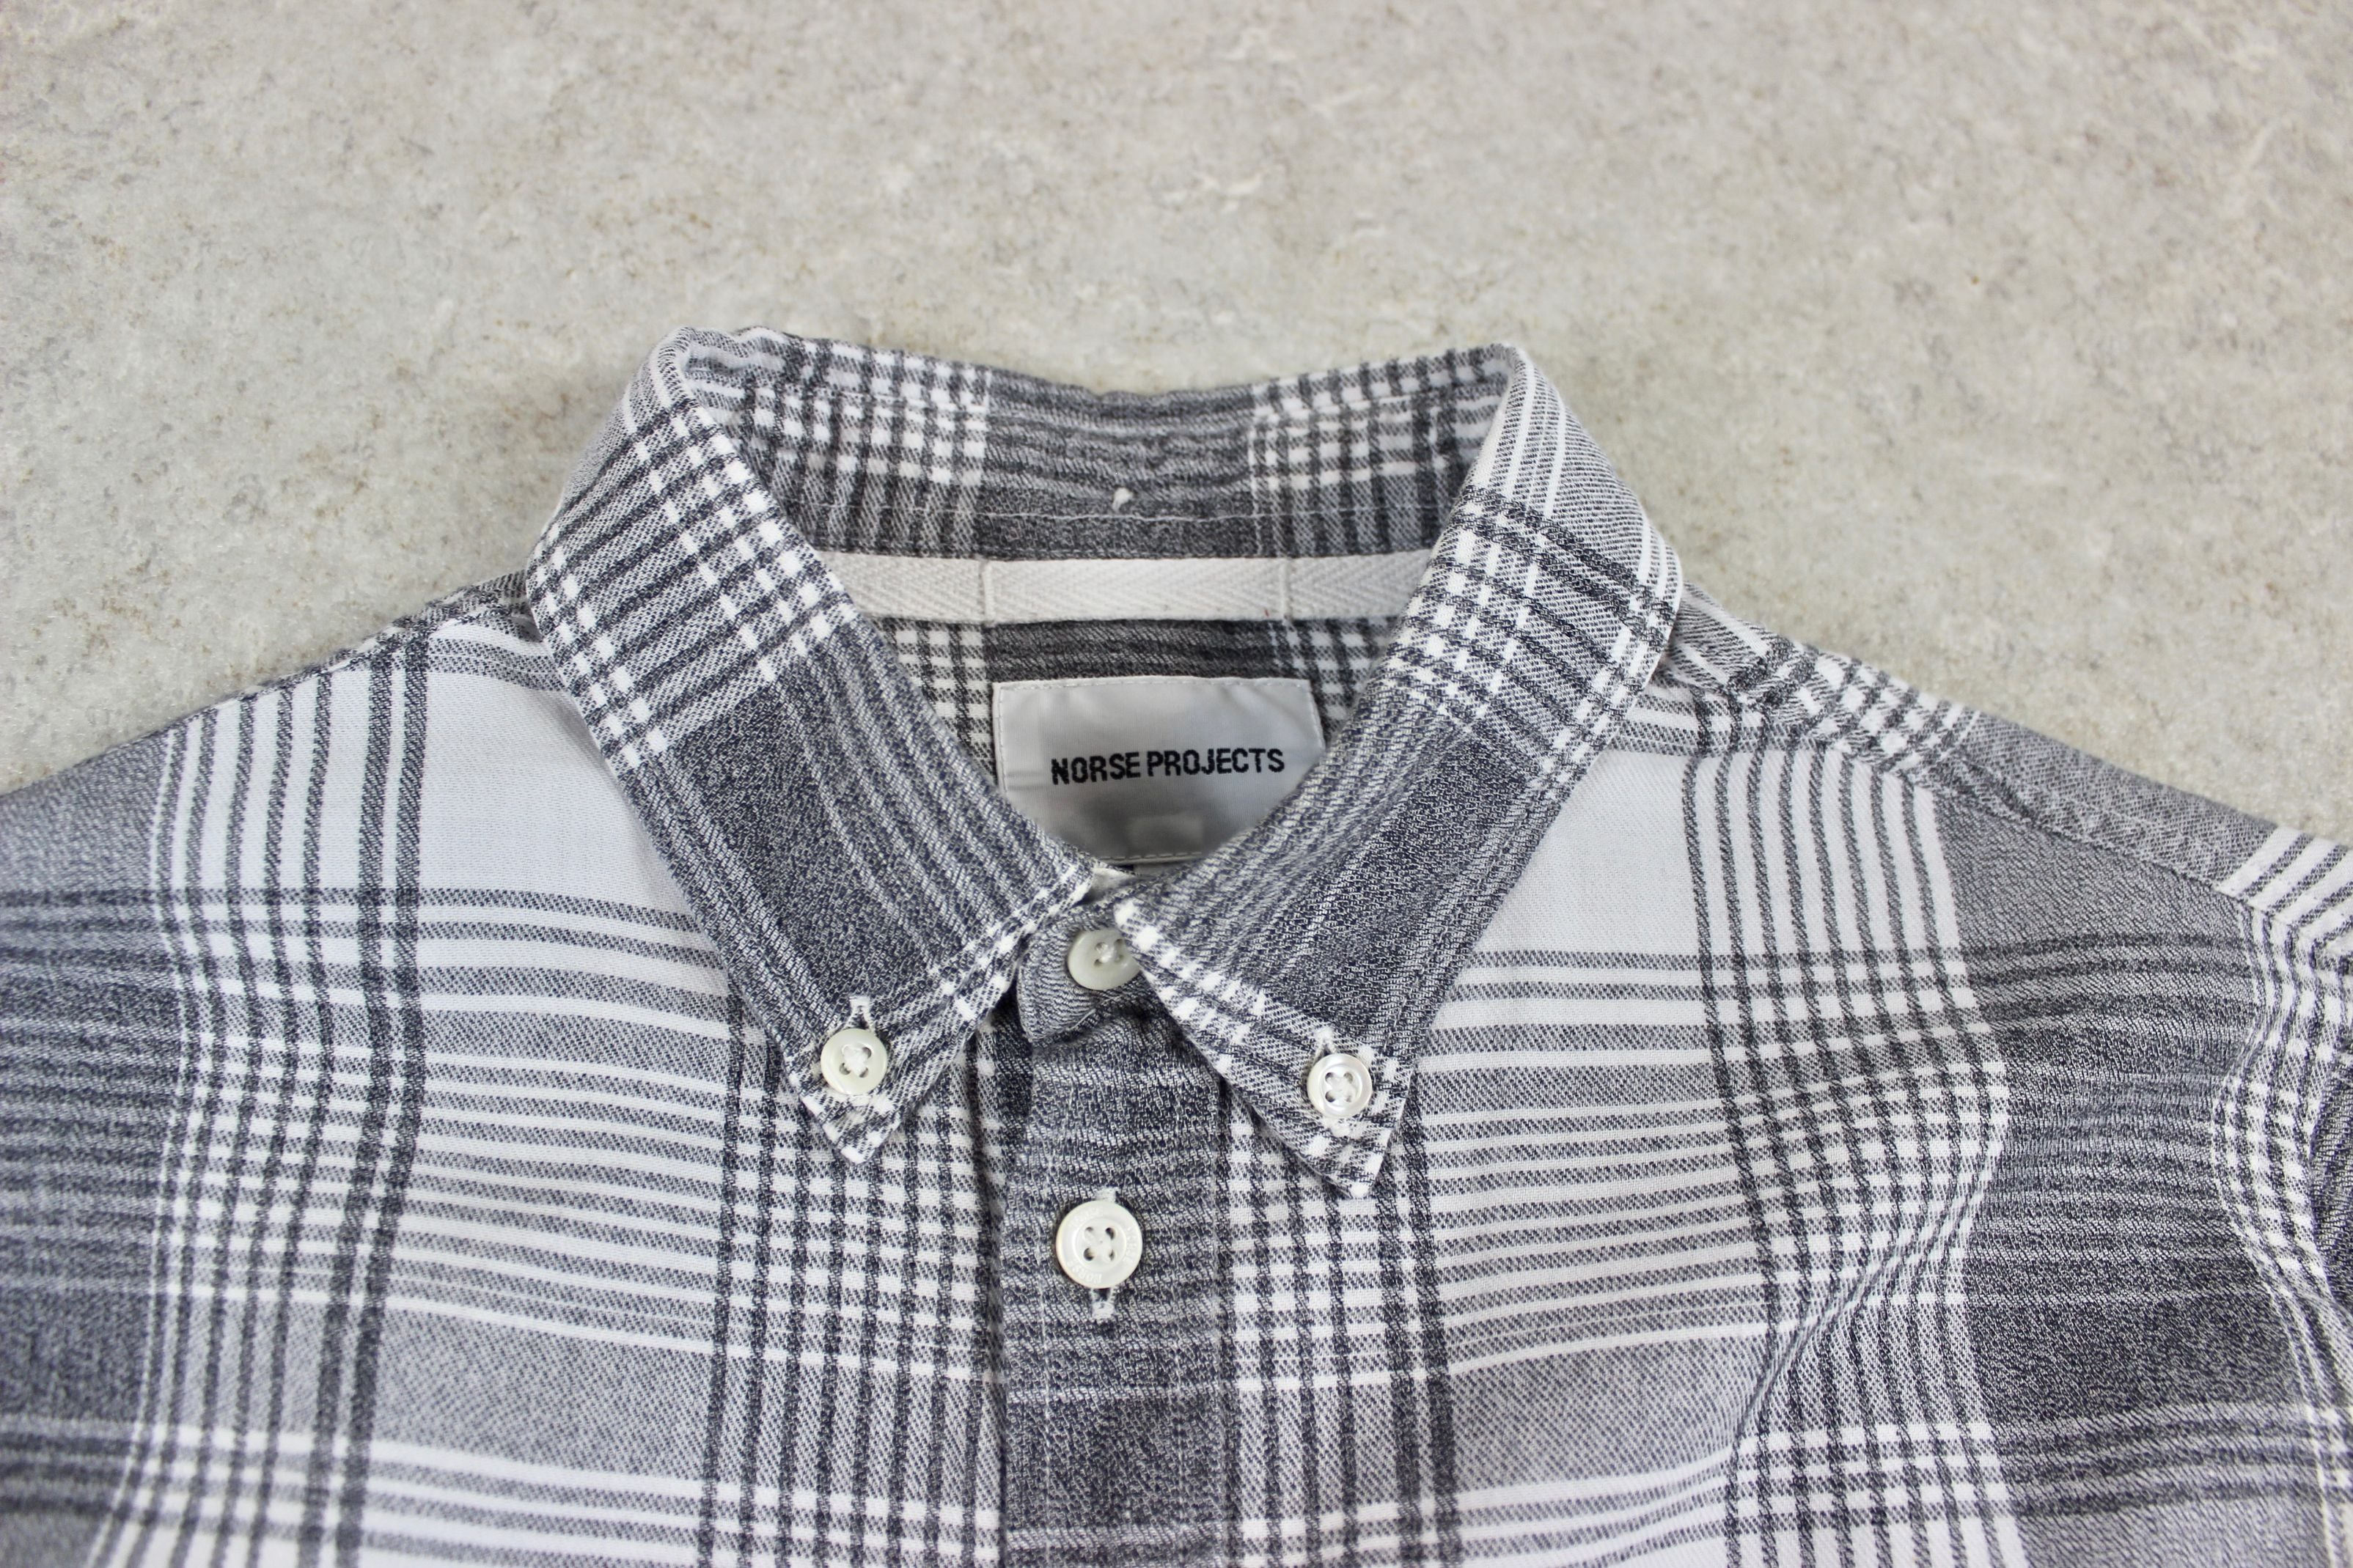 Norse Projects - Shirt - White/Grey Check - Extra Small